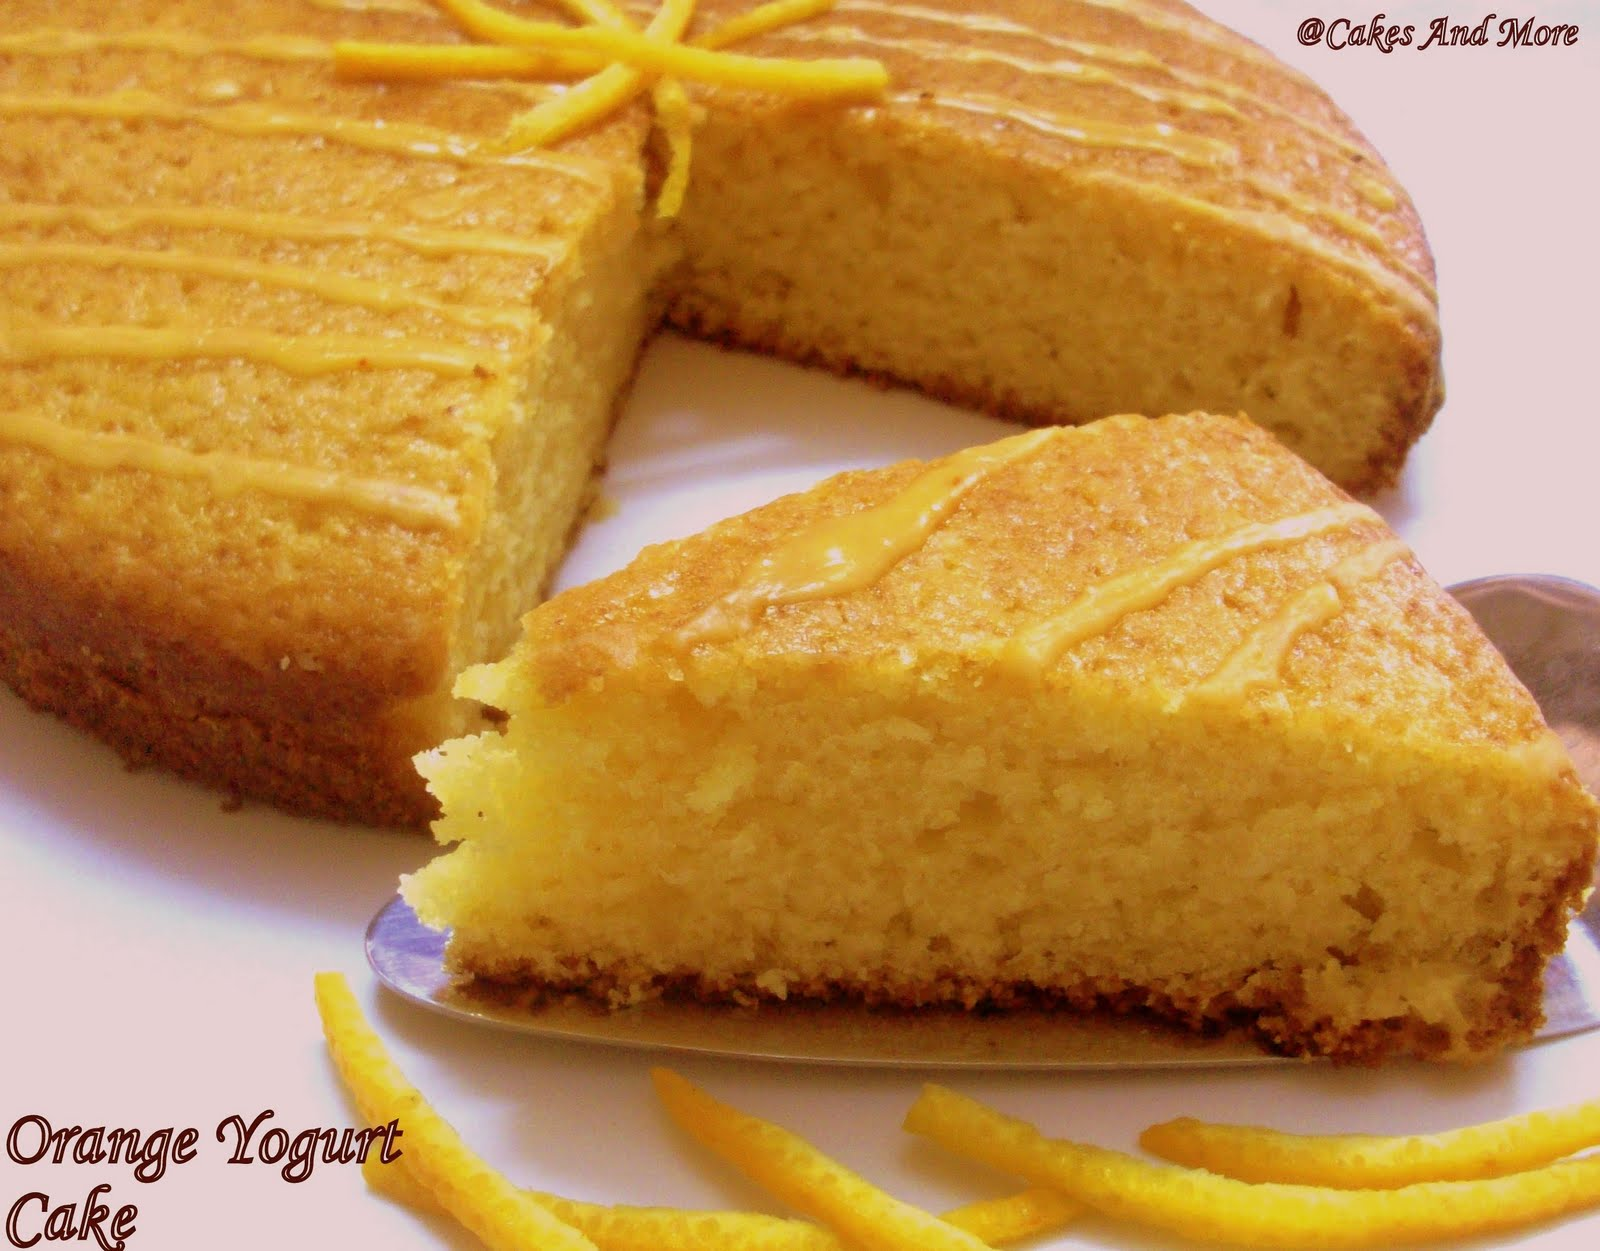 Cakes And More!: Orange Yogurt Cake - Oh-so-delicious!!!